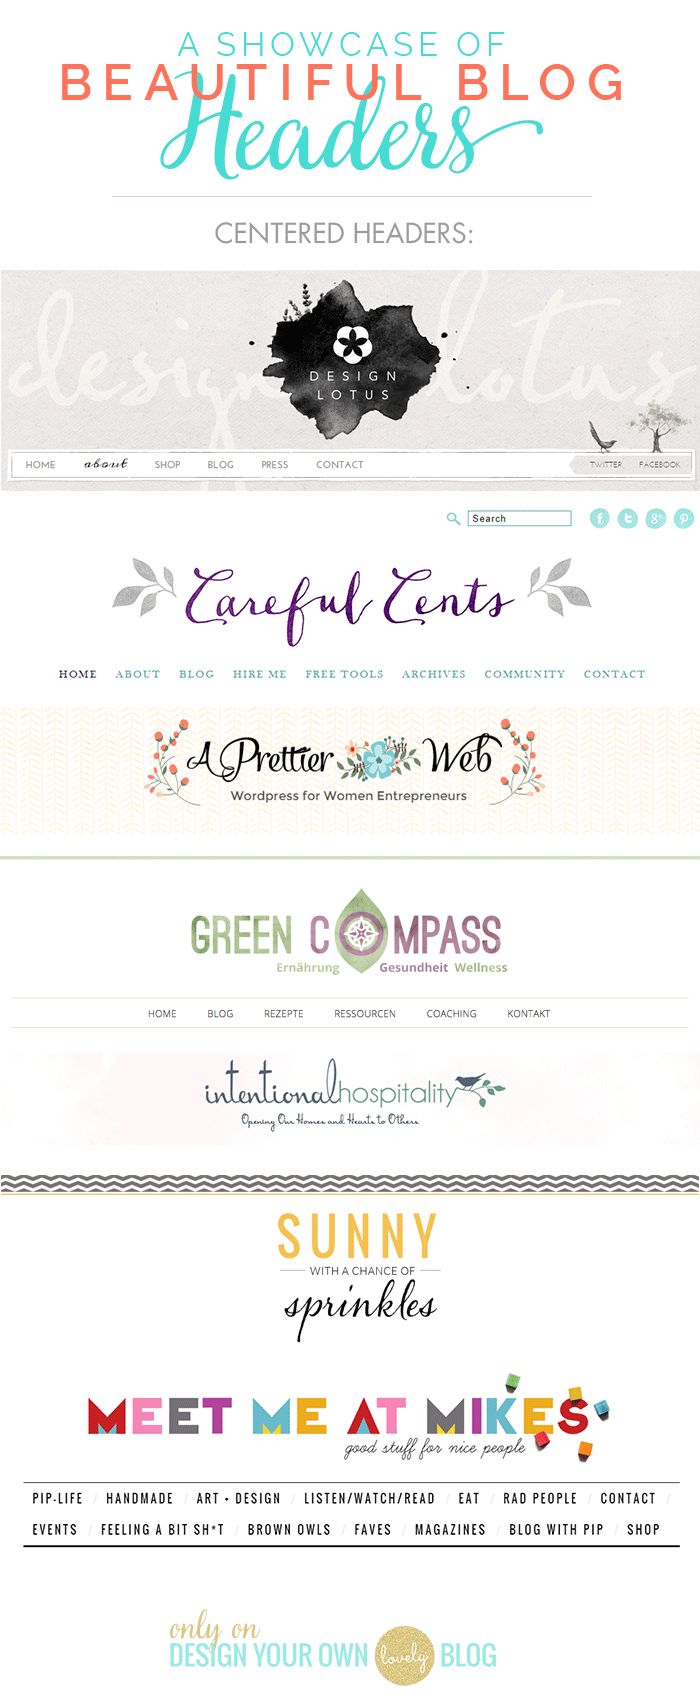 Beautiful blog headers with centered logos. See more blog header inspiration at DesignYourOwnBlog.com.